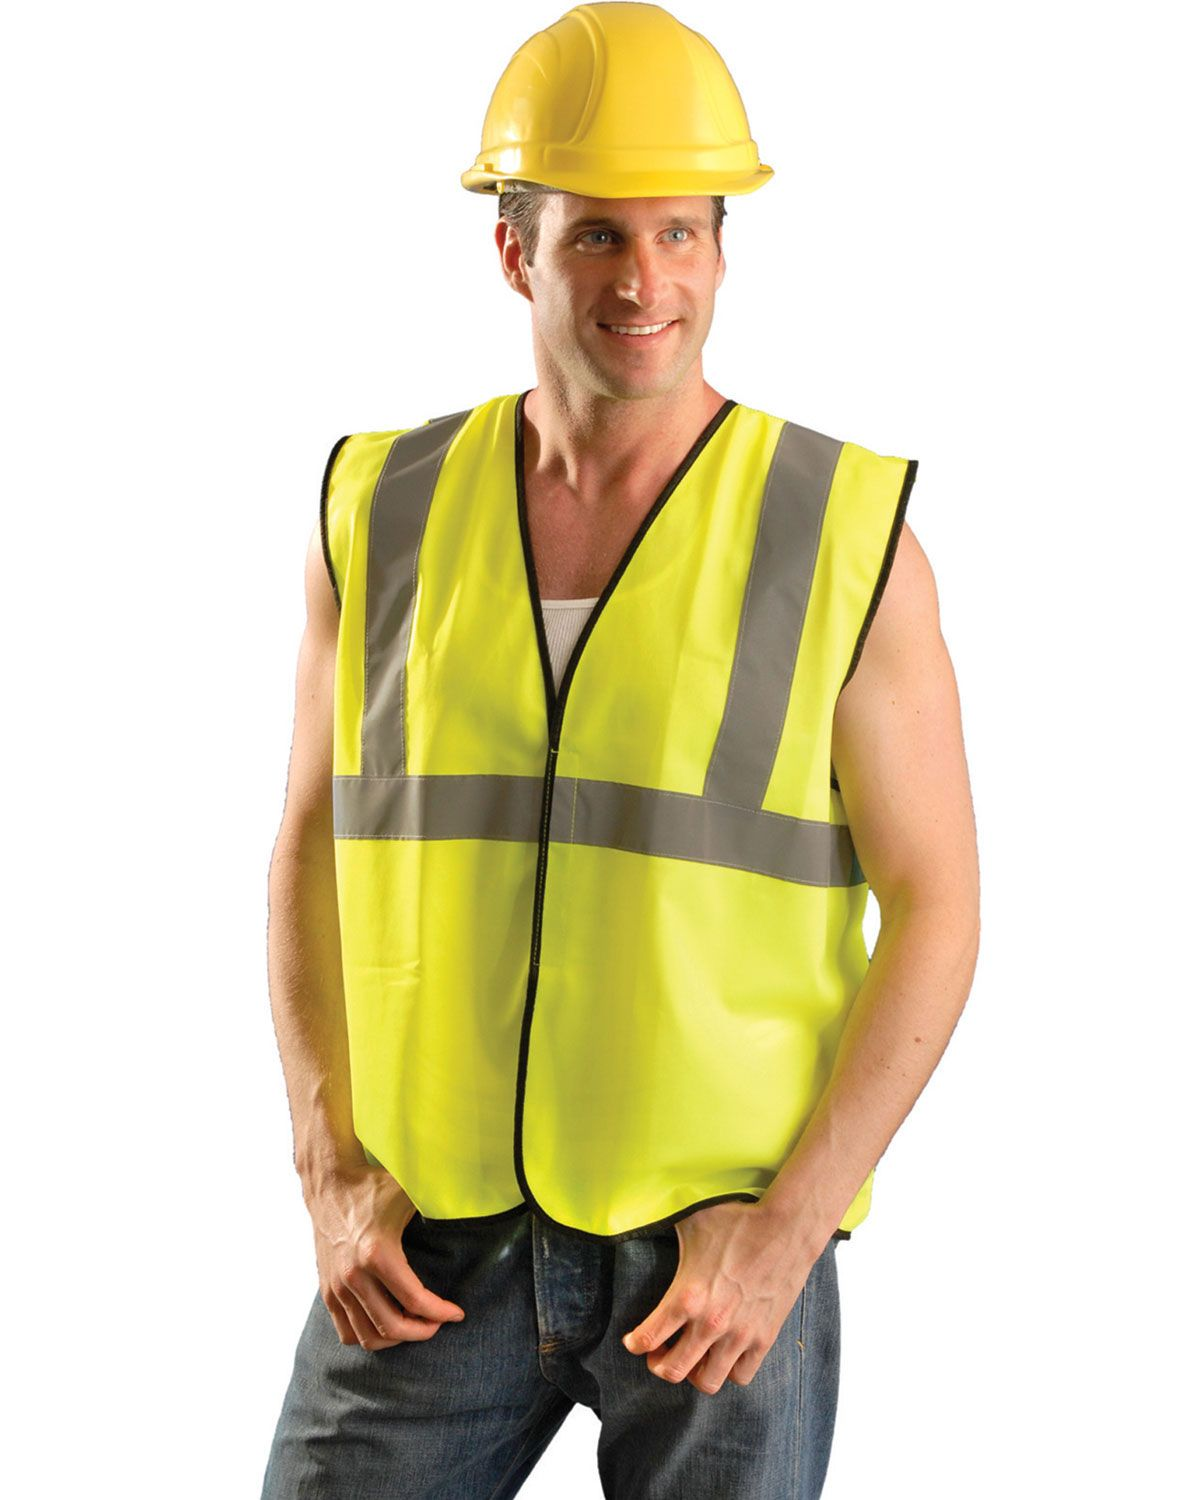 Pin by AlinSLive on HiVis Workwear / Clothes in 2020 (With